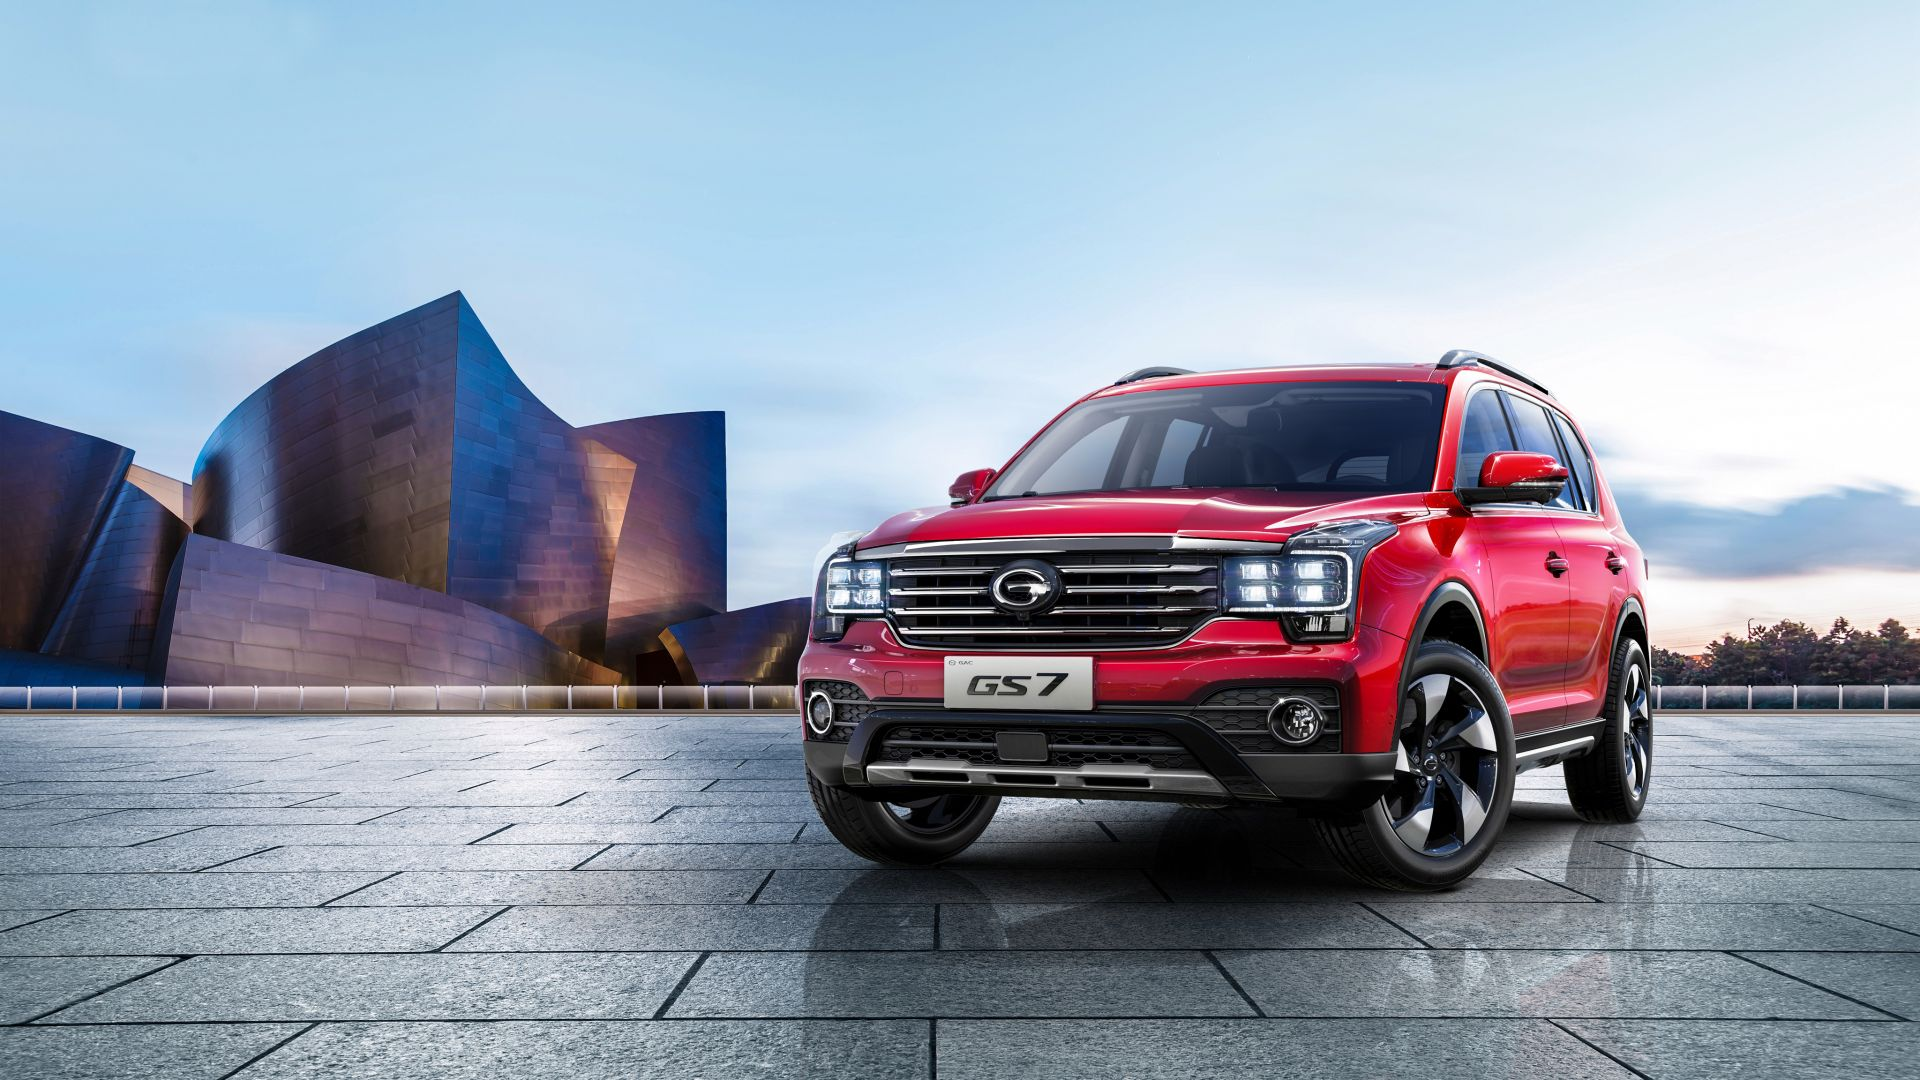 Trumpchi GS7, 2018 cars, 4k (horizontal)